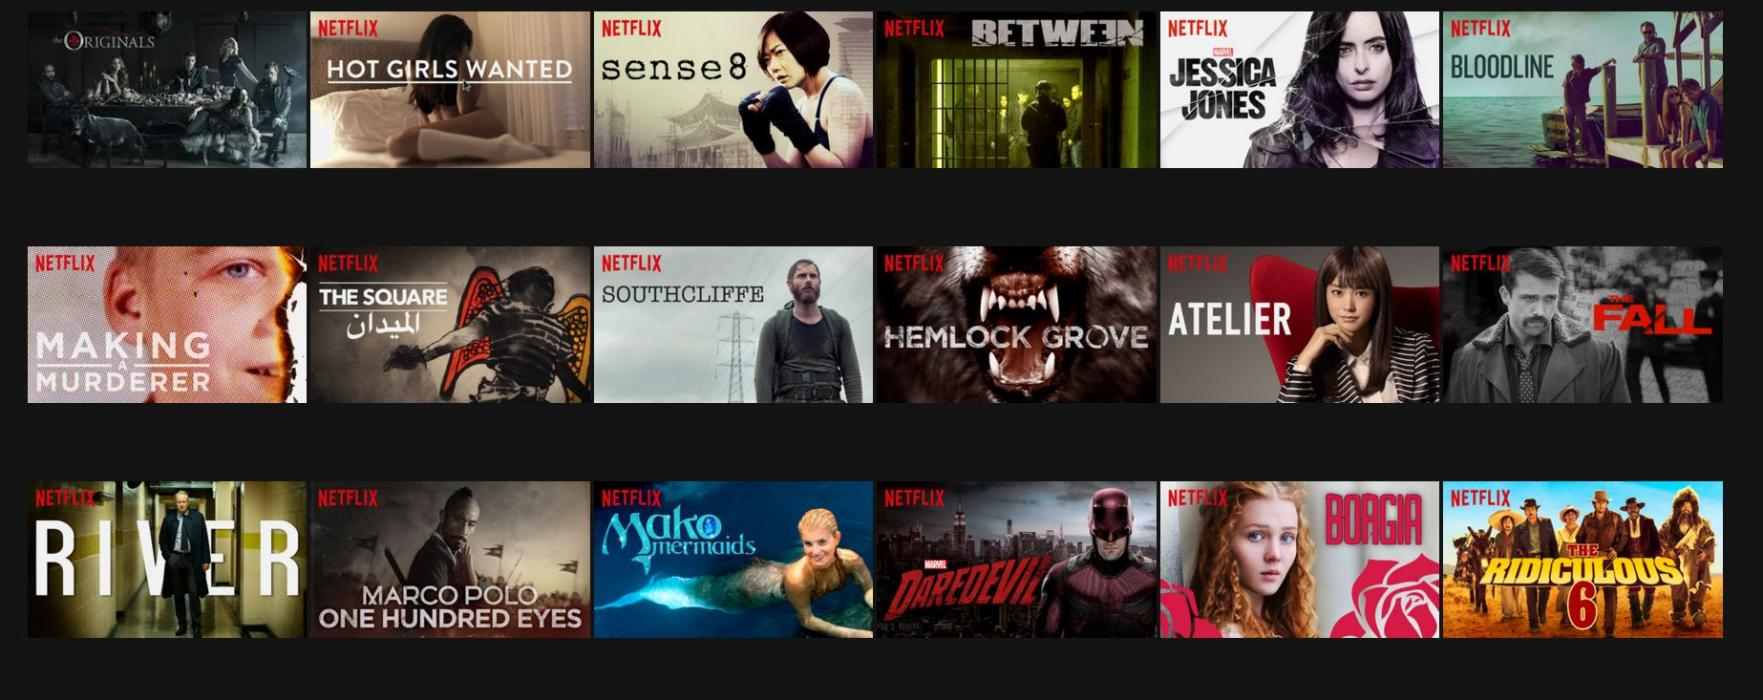 Netflix, series originales